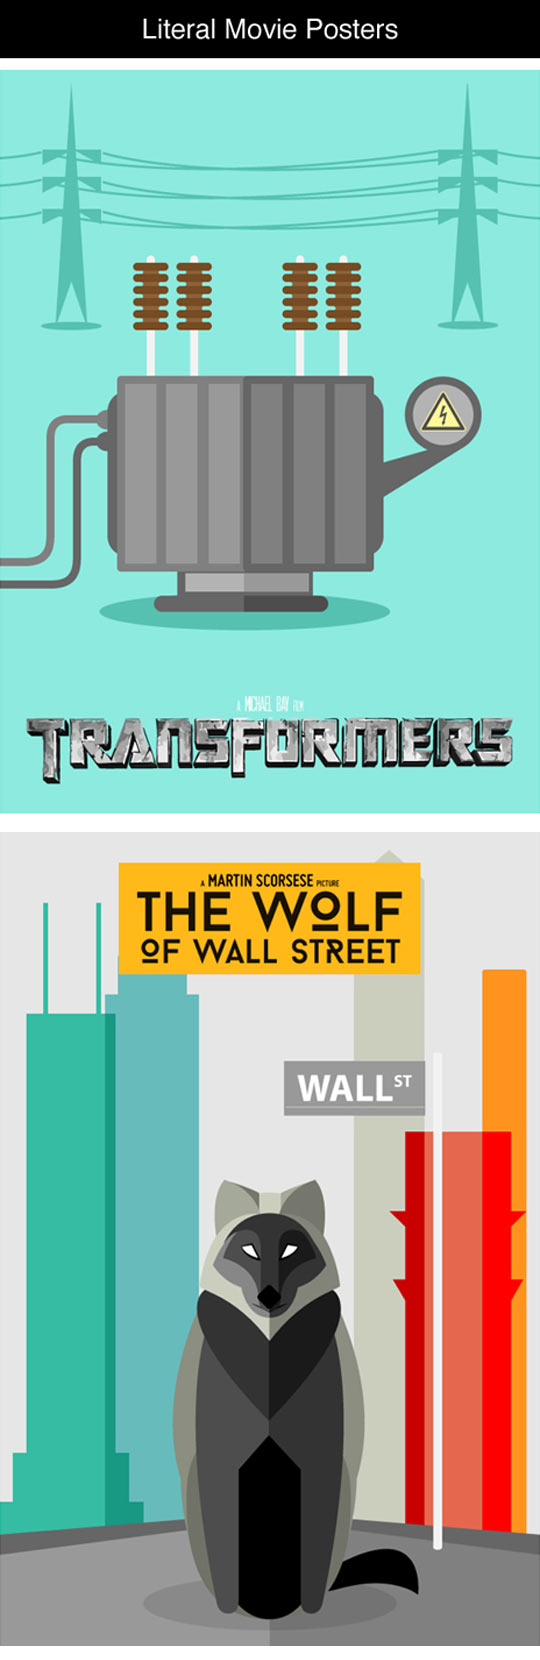 funny-literal-movie-poster-Transformers